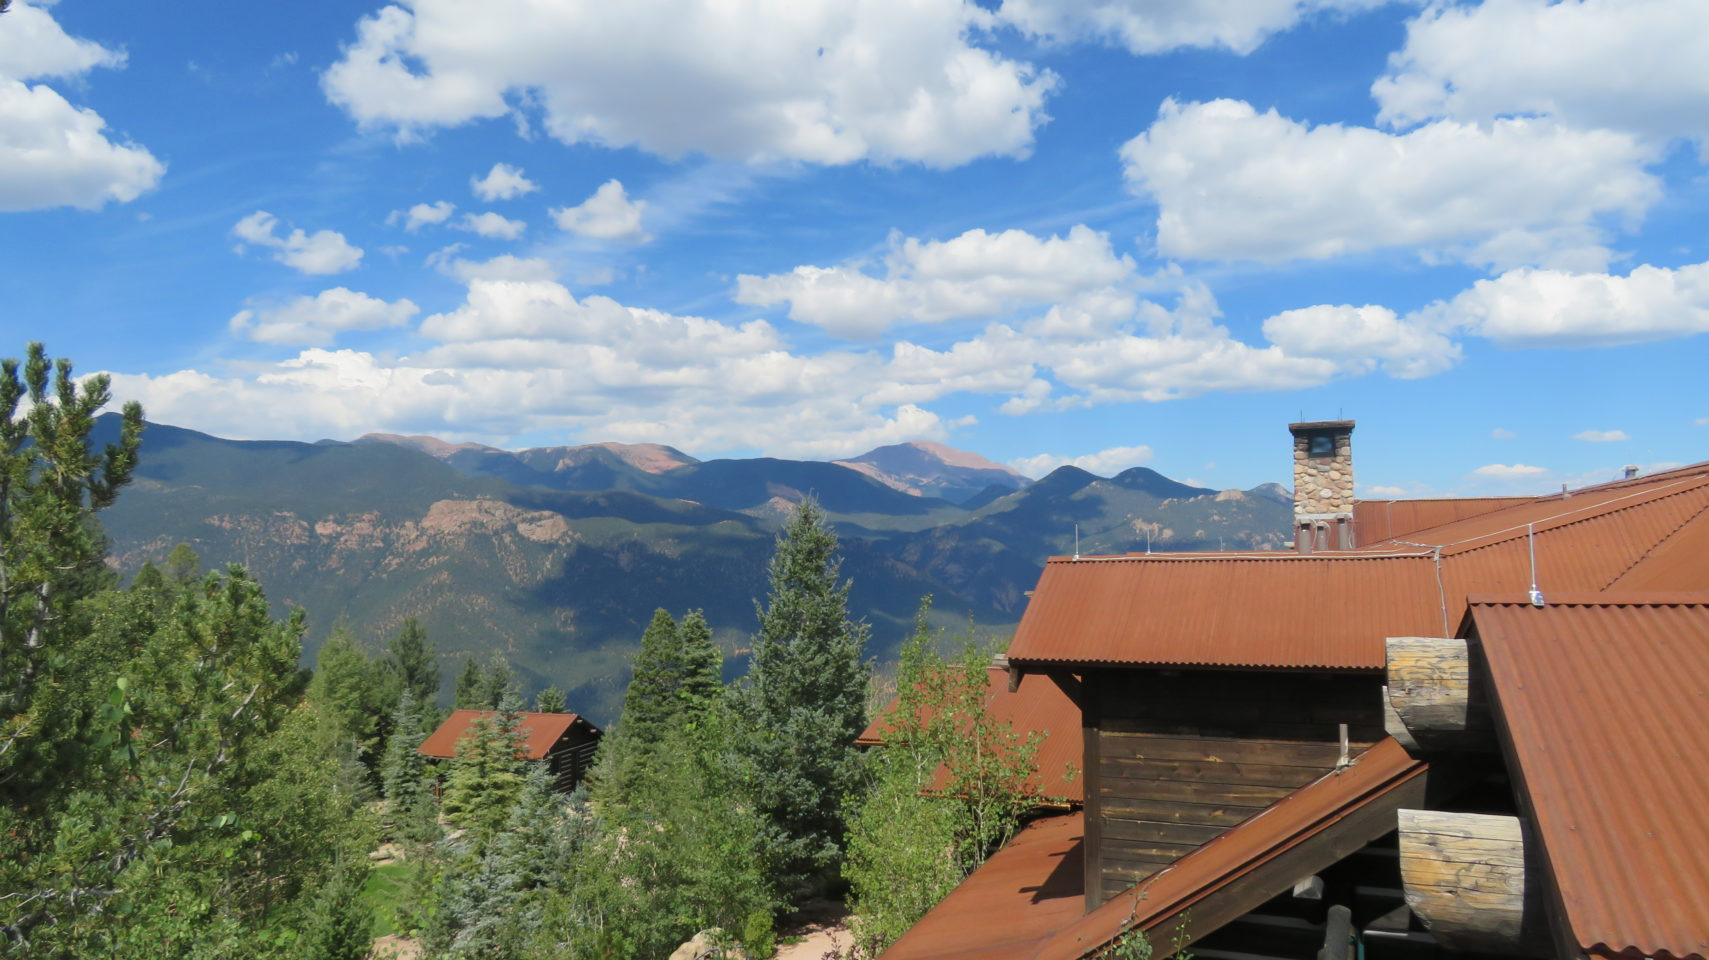 The Pikes Peak summit viewed from Cloud Camp at The Broadmoor